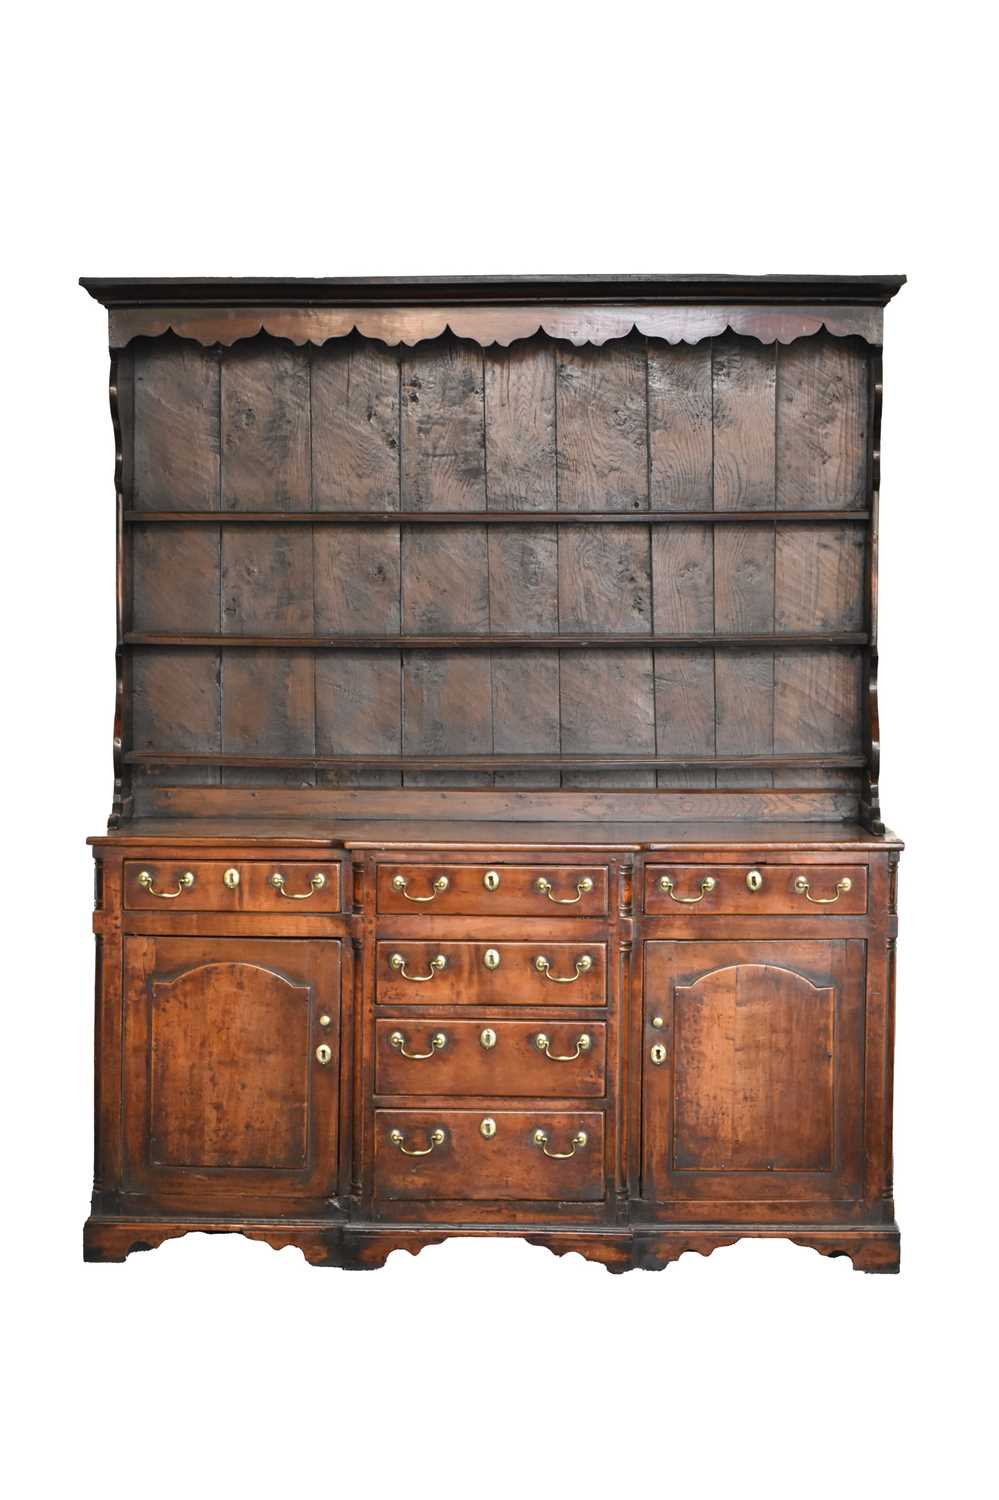 460 - A late 18th century fruitwood or yew wood breakfront dresser, North Wales